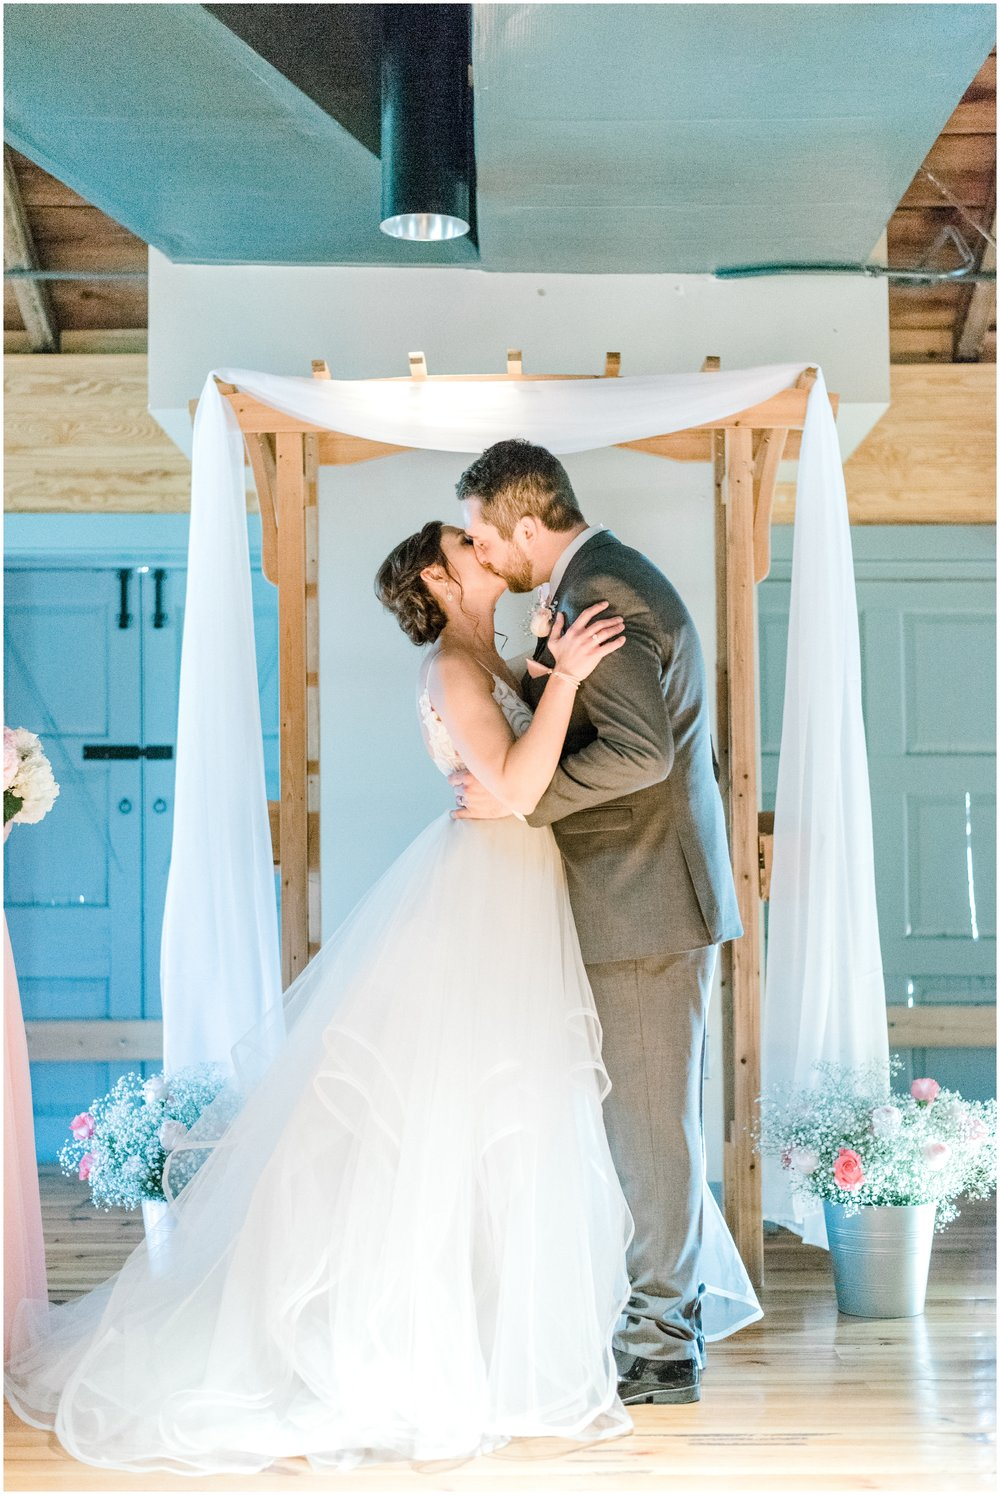 Sunny Spring Wedding at The Carriage House at Rockwood Park in Wilmington, DE- Krista Brackin Photography_0073.jpg